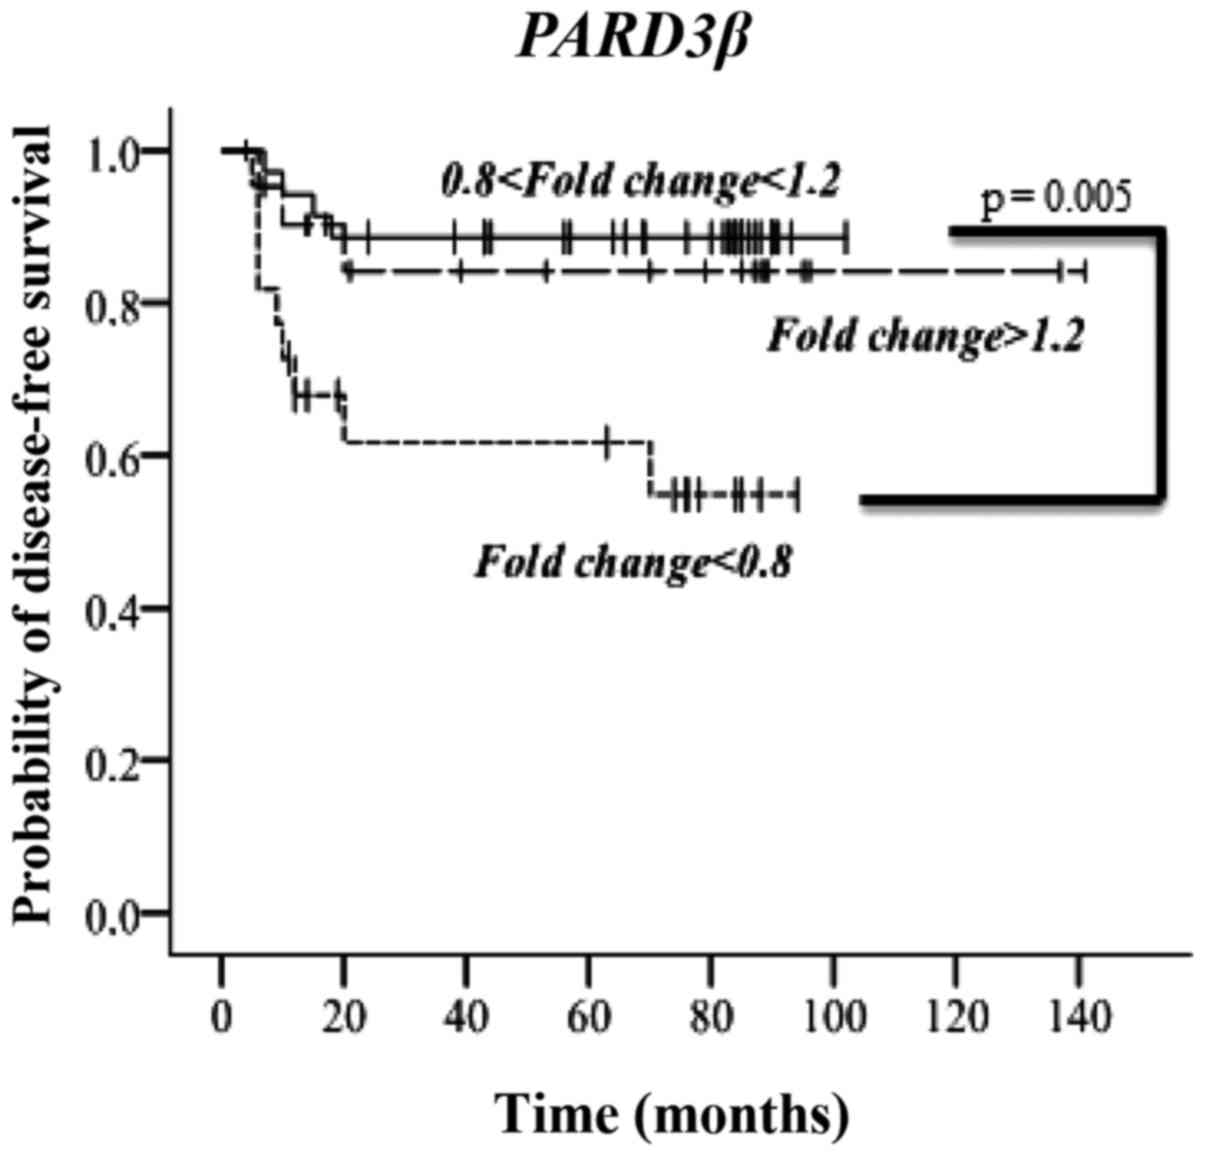 Expression and prognostic value of the cell polarity PAR